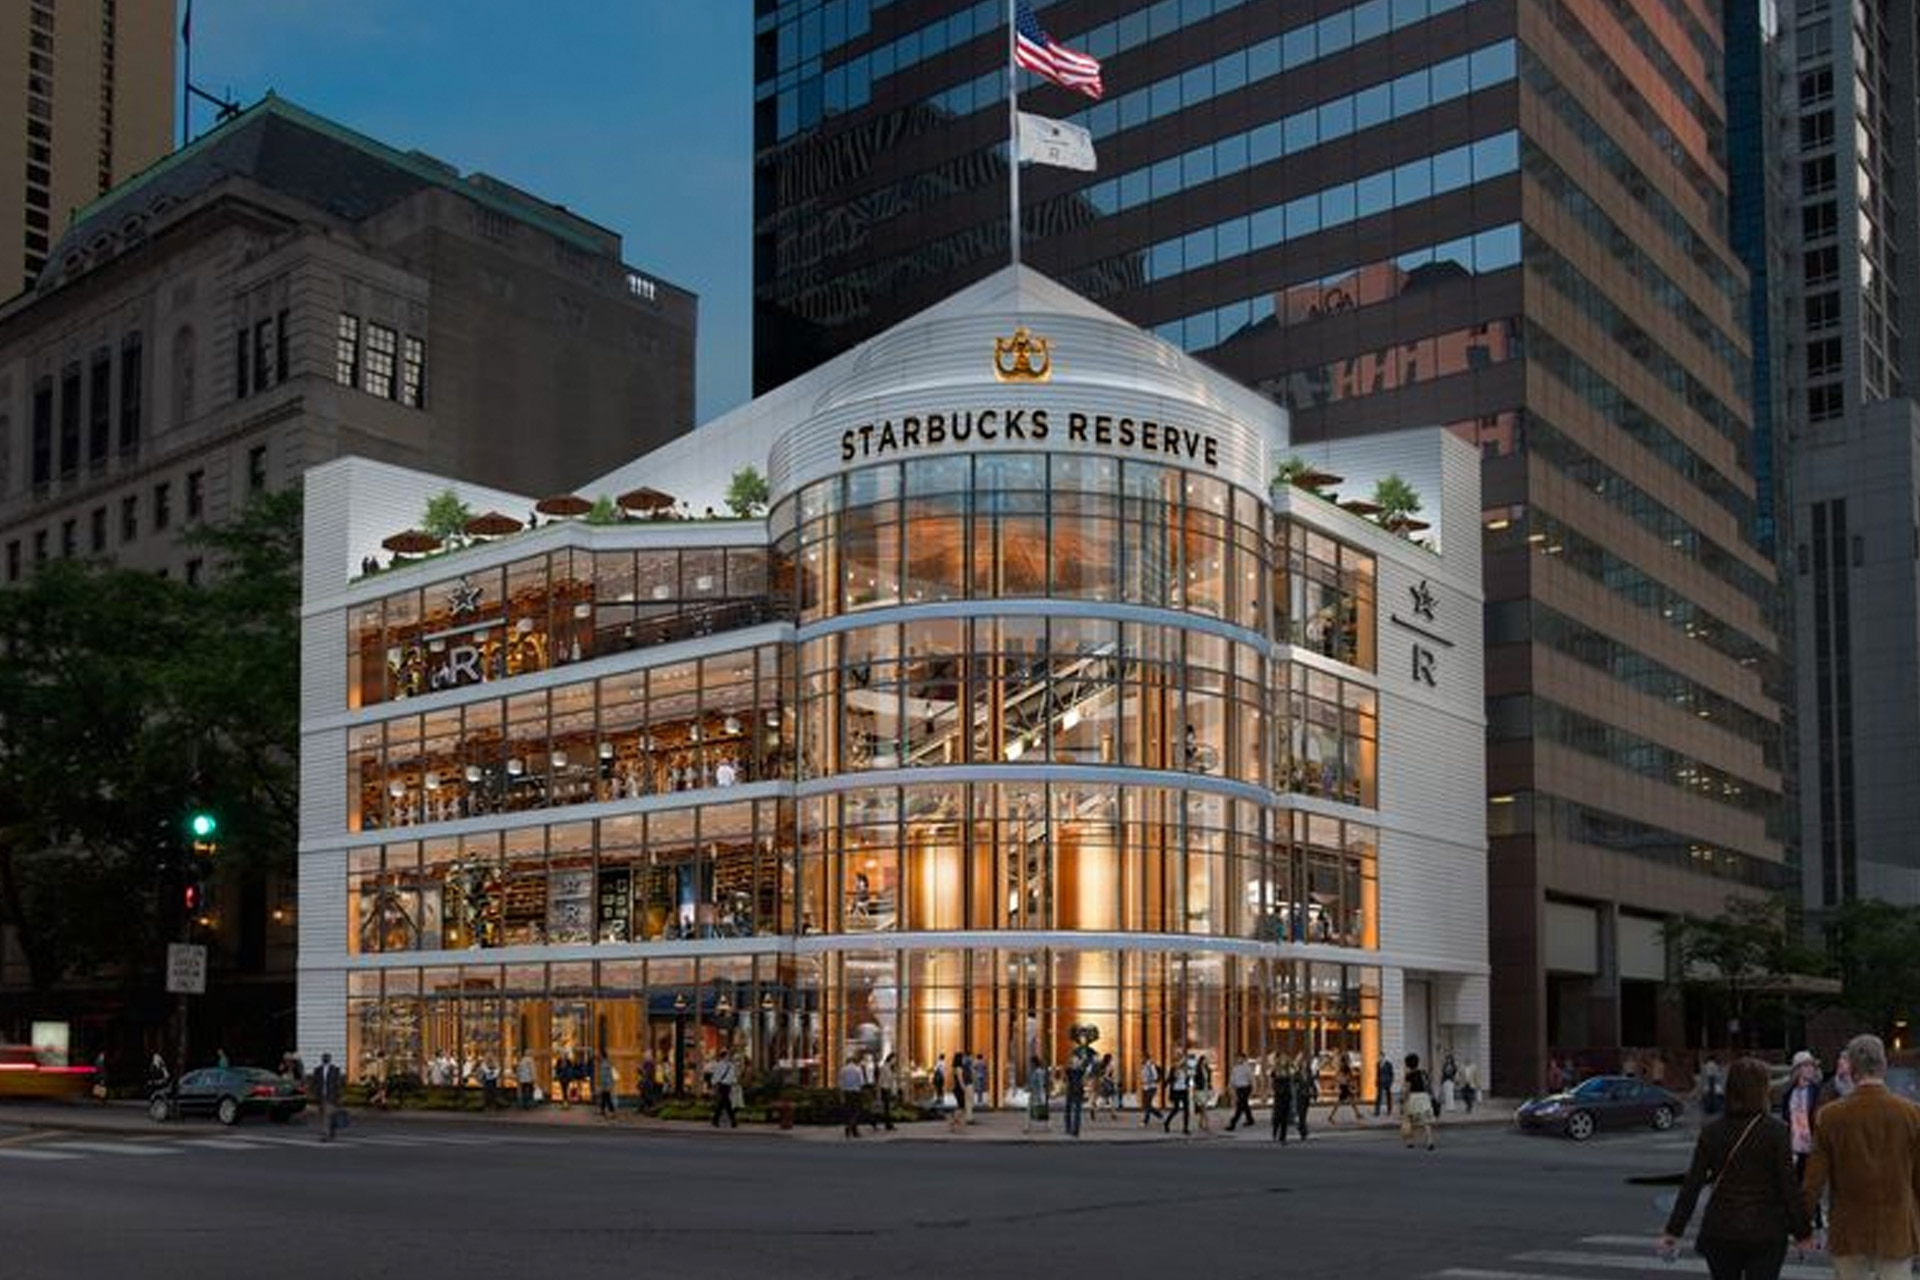 See Inside What's Set To Become The World's Largest Starbucks